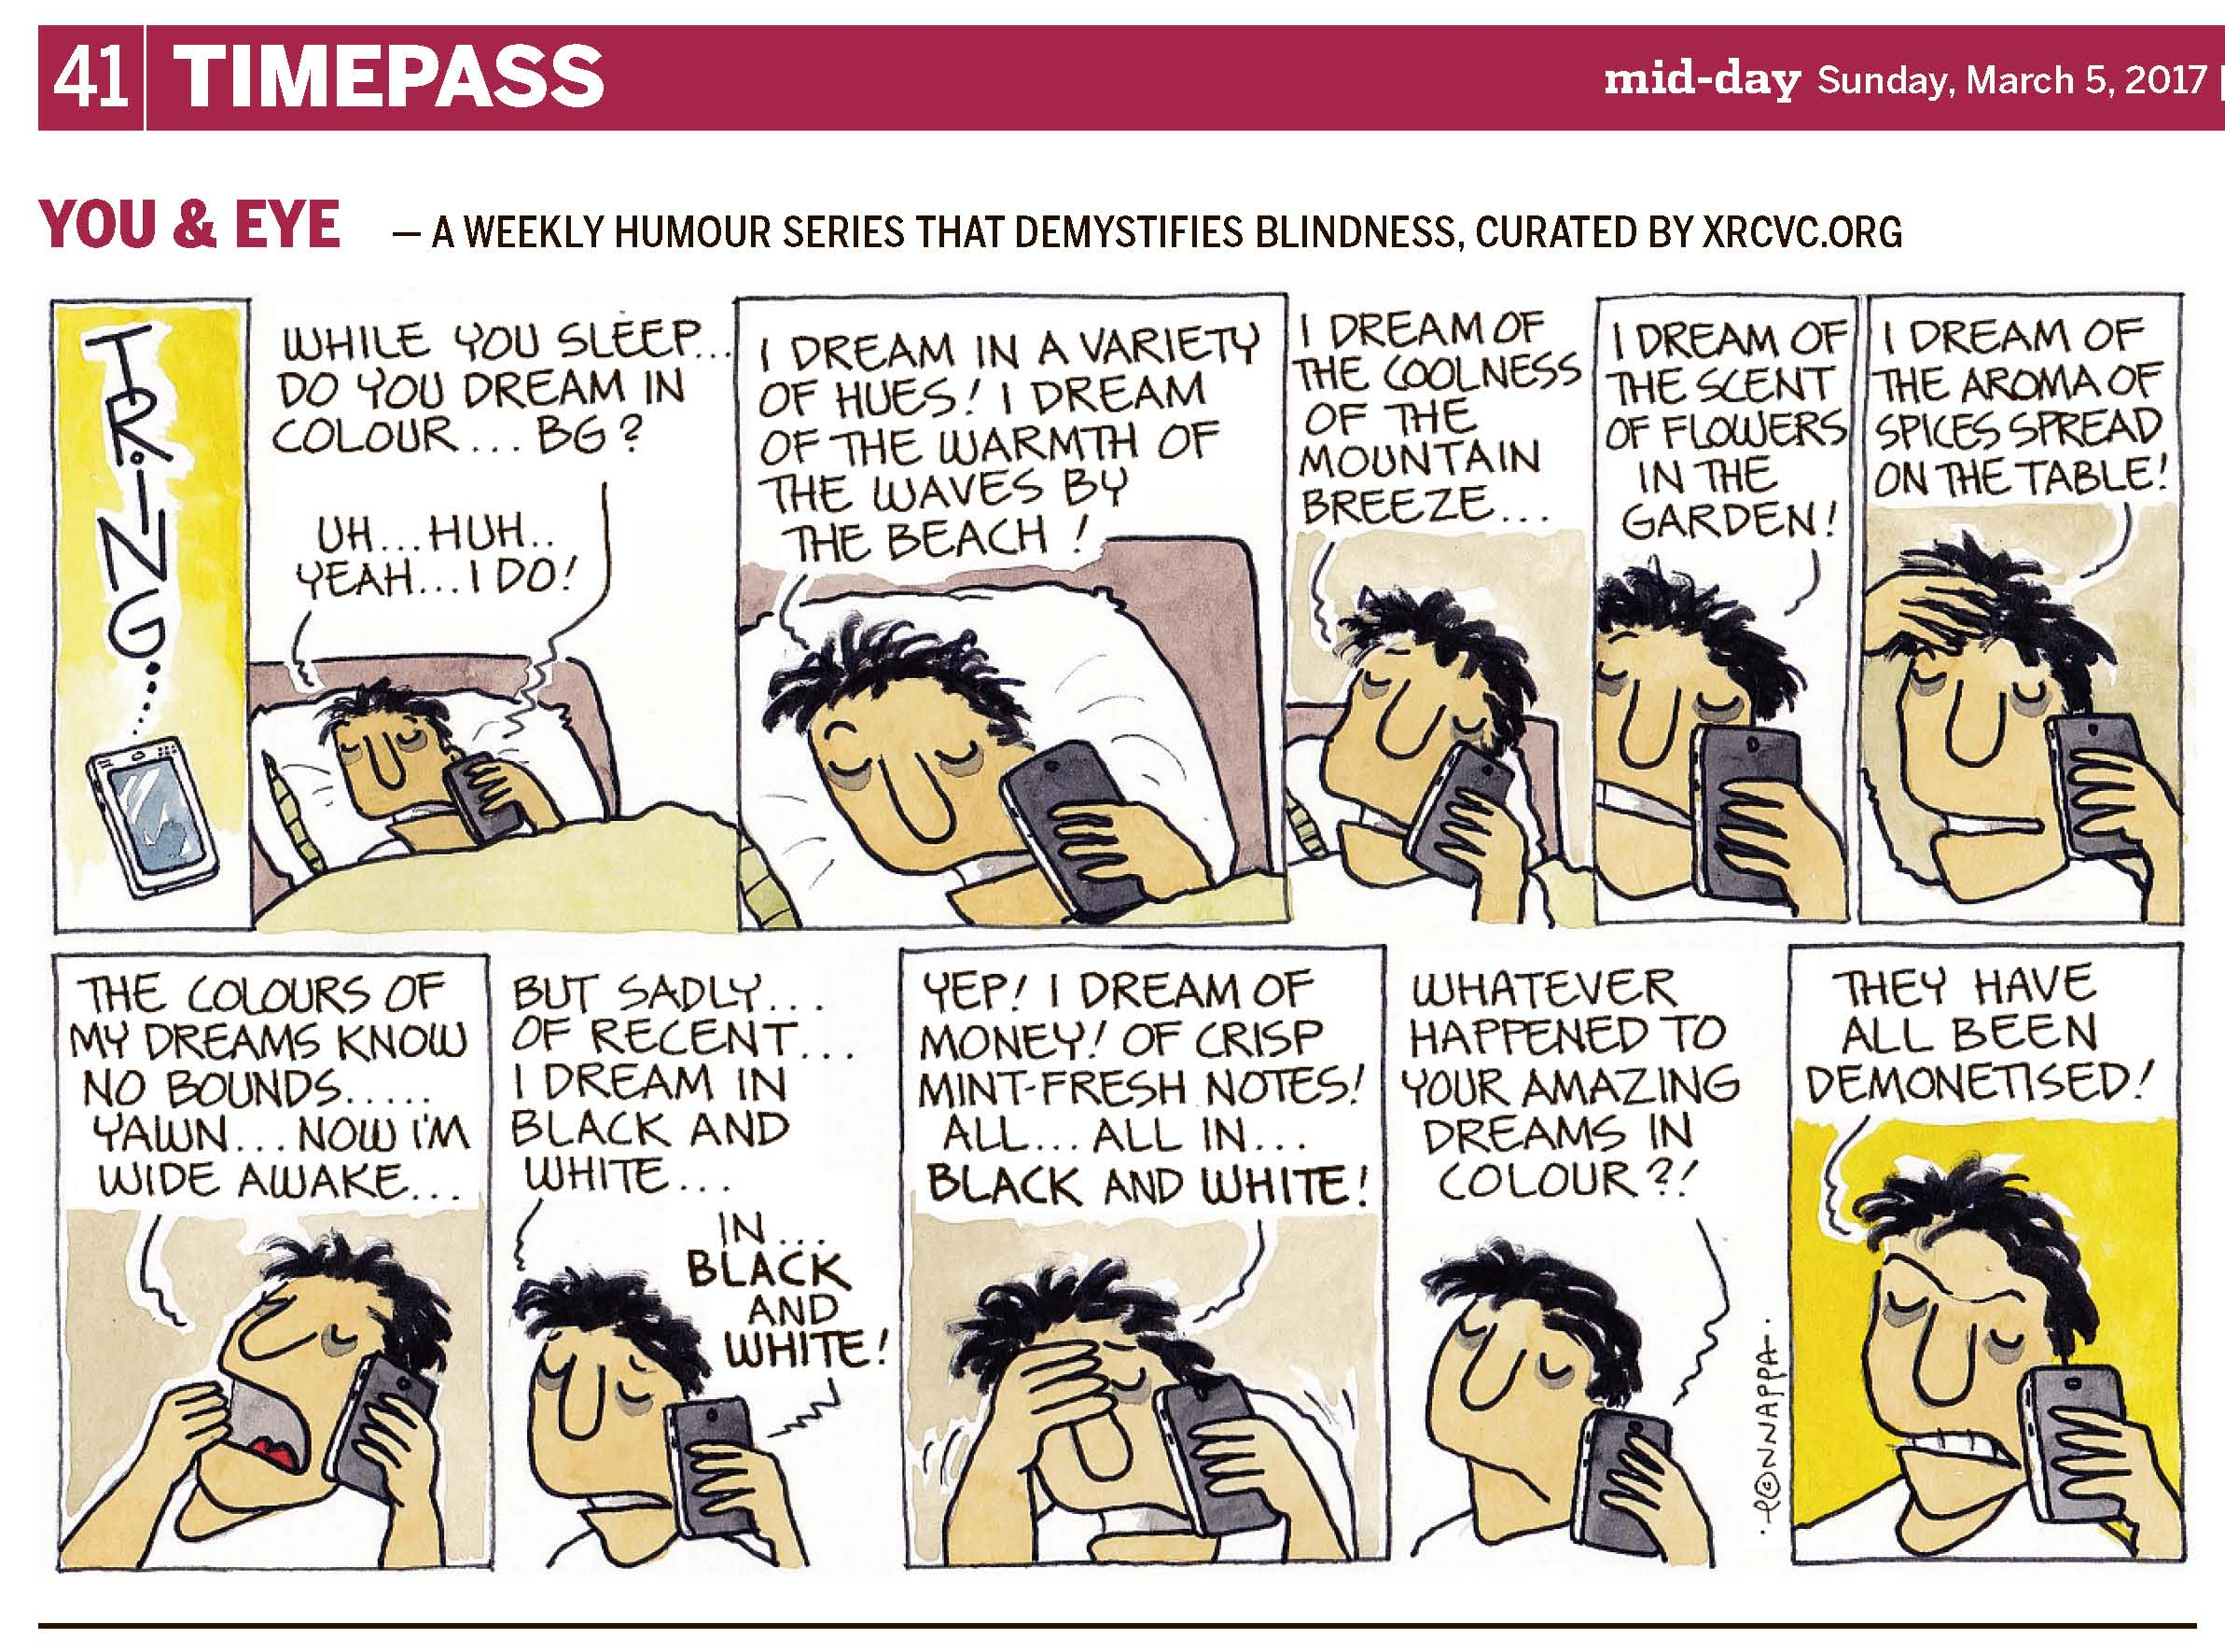 (top-left) 41 | TIMEPASS (top-right) mid-day Sunday, March 5, 2017 | YOU & EYE – A WEEKLY HUMOUR SERIES THAT DEMYSTIFIES BLINDNESS, CURATED BY XRCVC.ORG Image description: A cartoon strip with 11 frames… Frame 1: (A  touchscreen mobile is seen from which the word TRING seems to be coming to represent a ringing sound.) Frame 2: (BG holds the mobile phone to his left ear while covered up and lying in bed; his hair is messed up.) Voice from the phone: While you sleep… do you dream in colour… BG? BG: Uh… Huh… Yeah… I do! Frame 3: (A close-up of BG holding the mobile phone to his left ear while still in bed.) BG: I dream in a variety of hues! I dream of the warmth of the waves by the beach! Frame 4: (A close-up of BG holding the mobile phone to his left ear while sitting up) BG: I dream of the coolness of the mountain breeze… Frame 5: